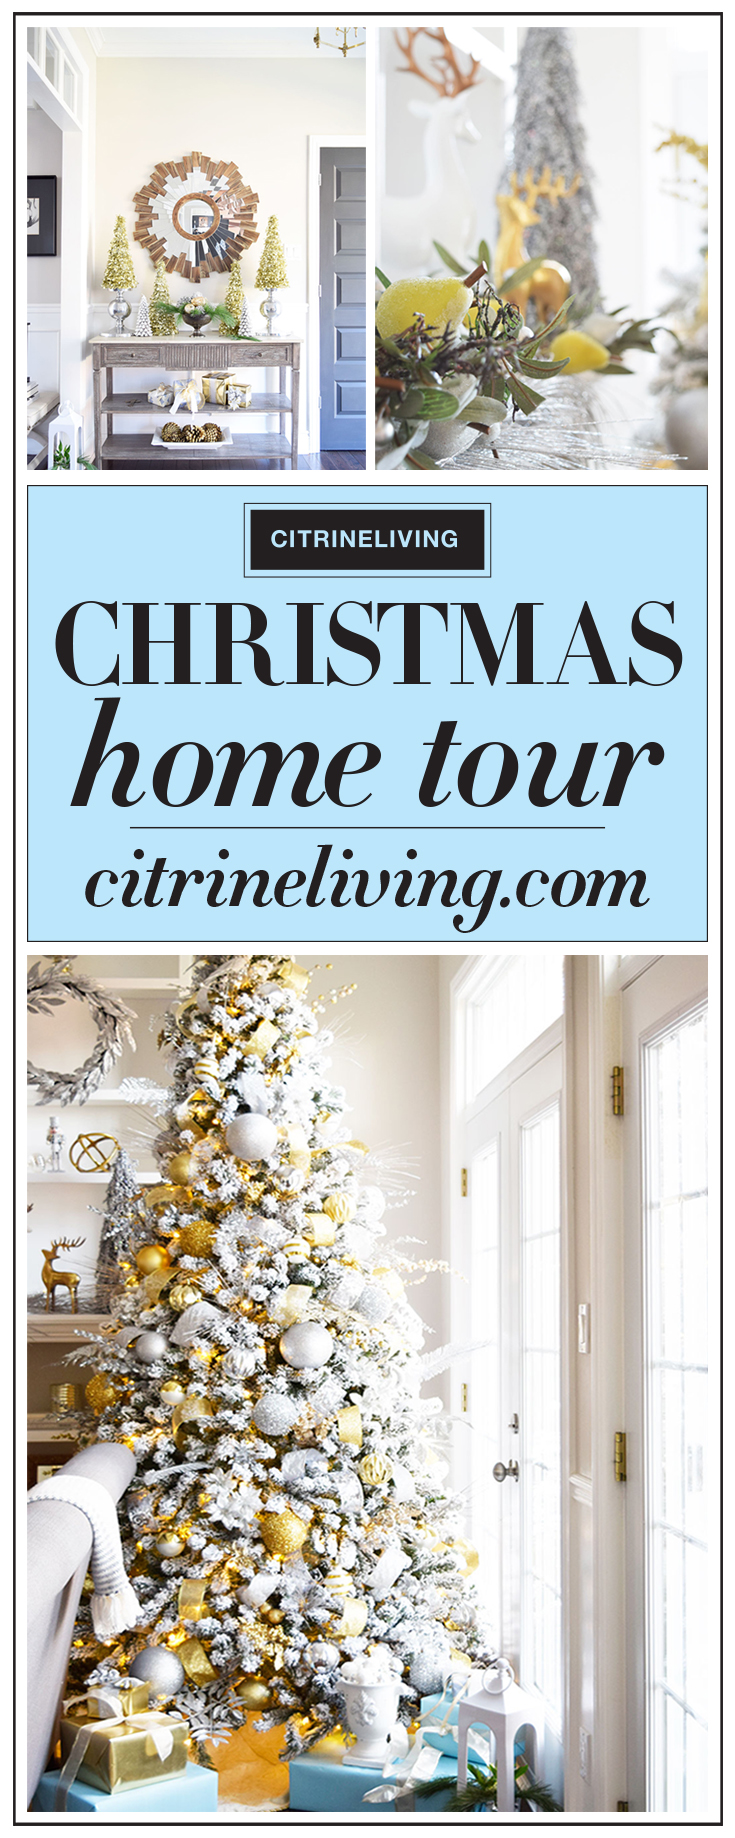 Christmas Home Tour - Gorgeous metallics and icy blue create a perfectly chic Holiday theme!